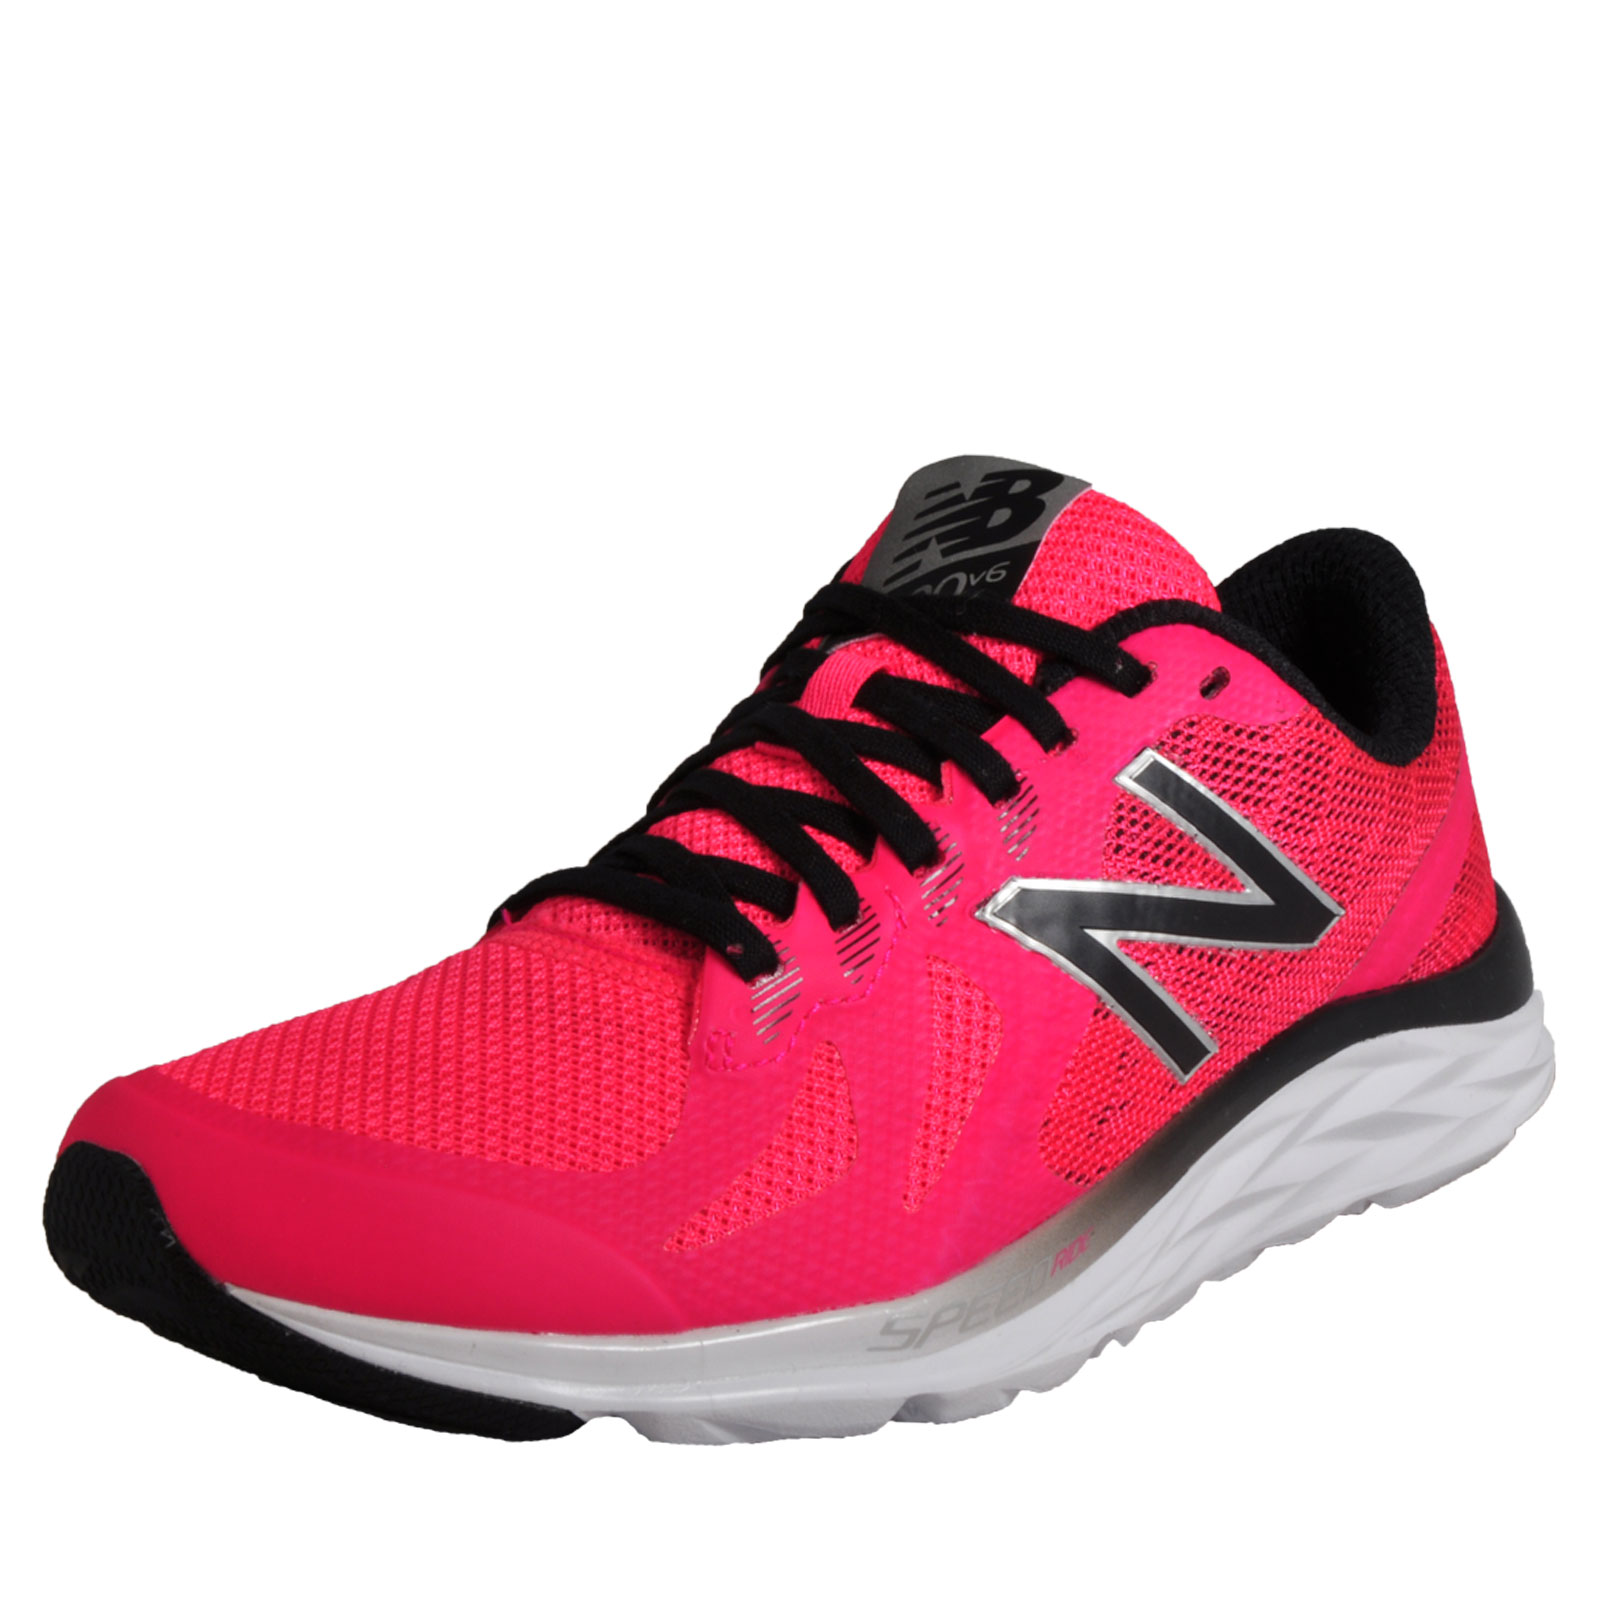 grossiste 14573 66bd0 Details about New Balance 790 V6 Women's Premium Running Shoes Gym Fitness  Trainers Pink